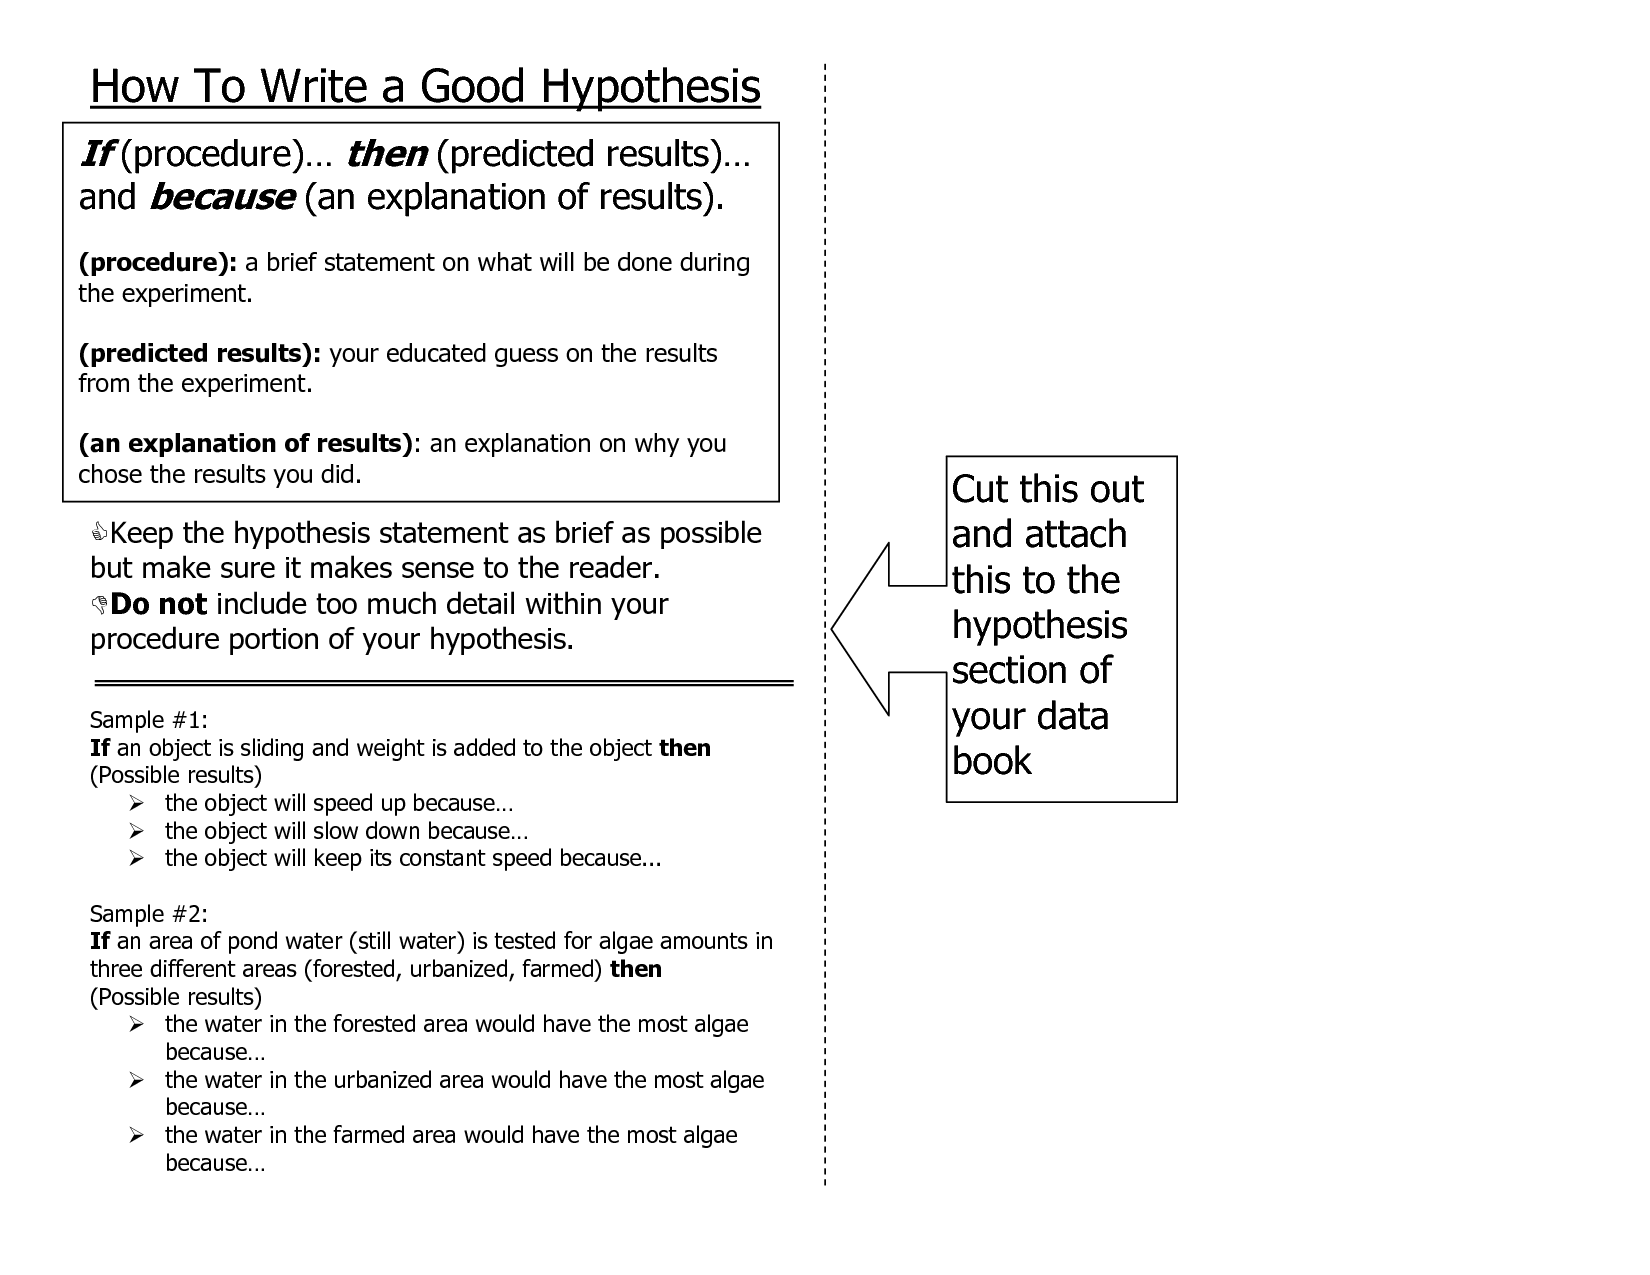 how to write thesis statement for research paper The core of your thesis statement for a research paper should be your argument an argument, in this sense, does not mean a dispute or a bald unsupported statement of views it means a well-reasoned perspective on your subject, supported by logic or evidence, presented fairly.